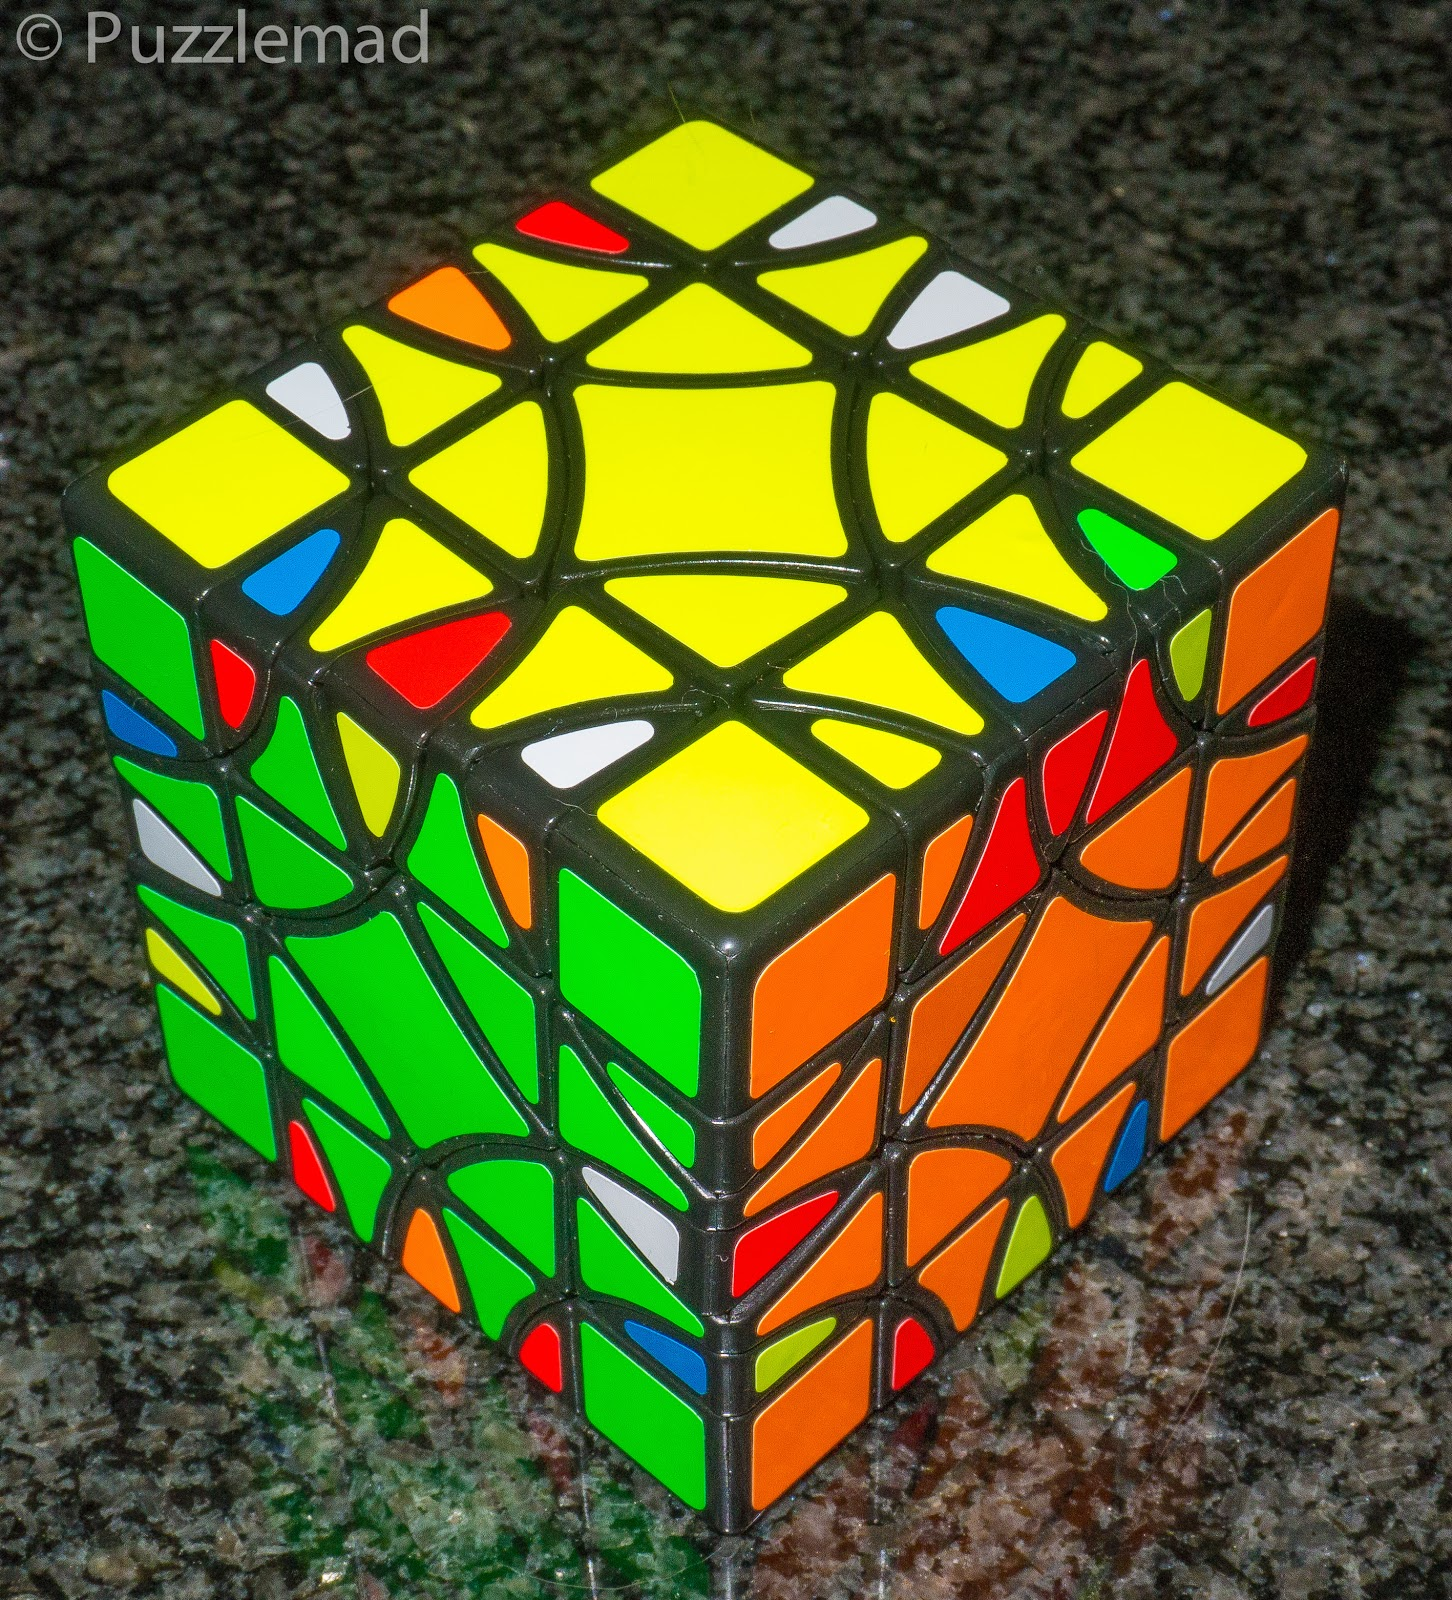 PuzzleMad: I Grille(d) This Cube